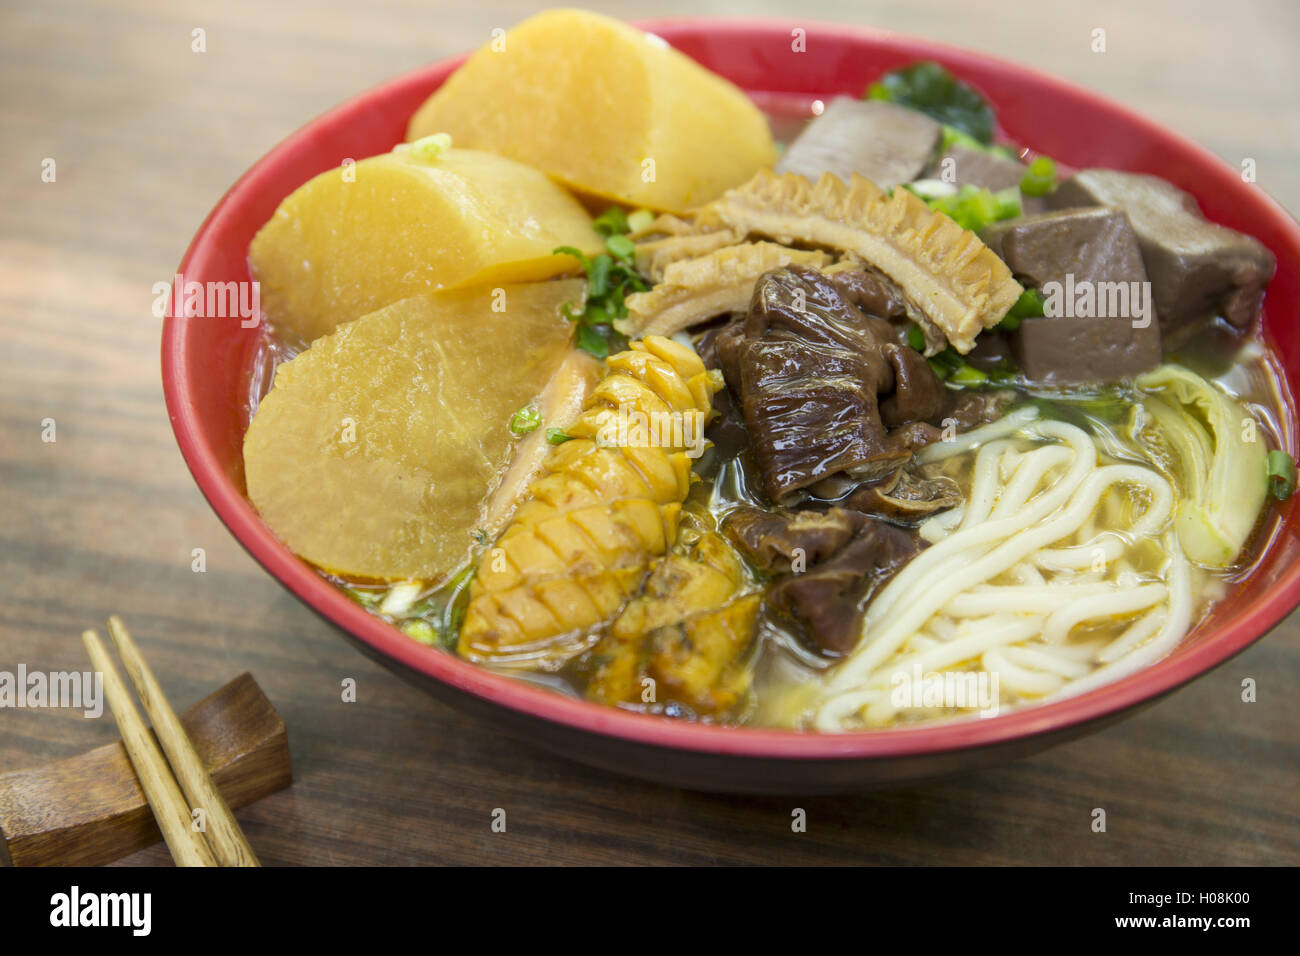 Chinese bowl of noodle with squid, dried pig blood and radish on the table - Stock Image